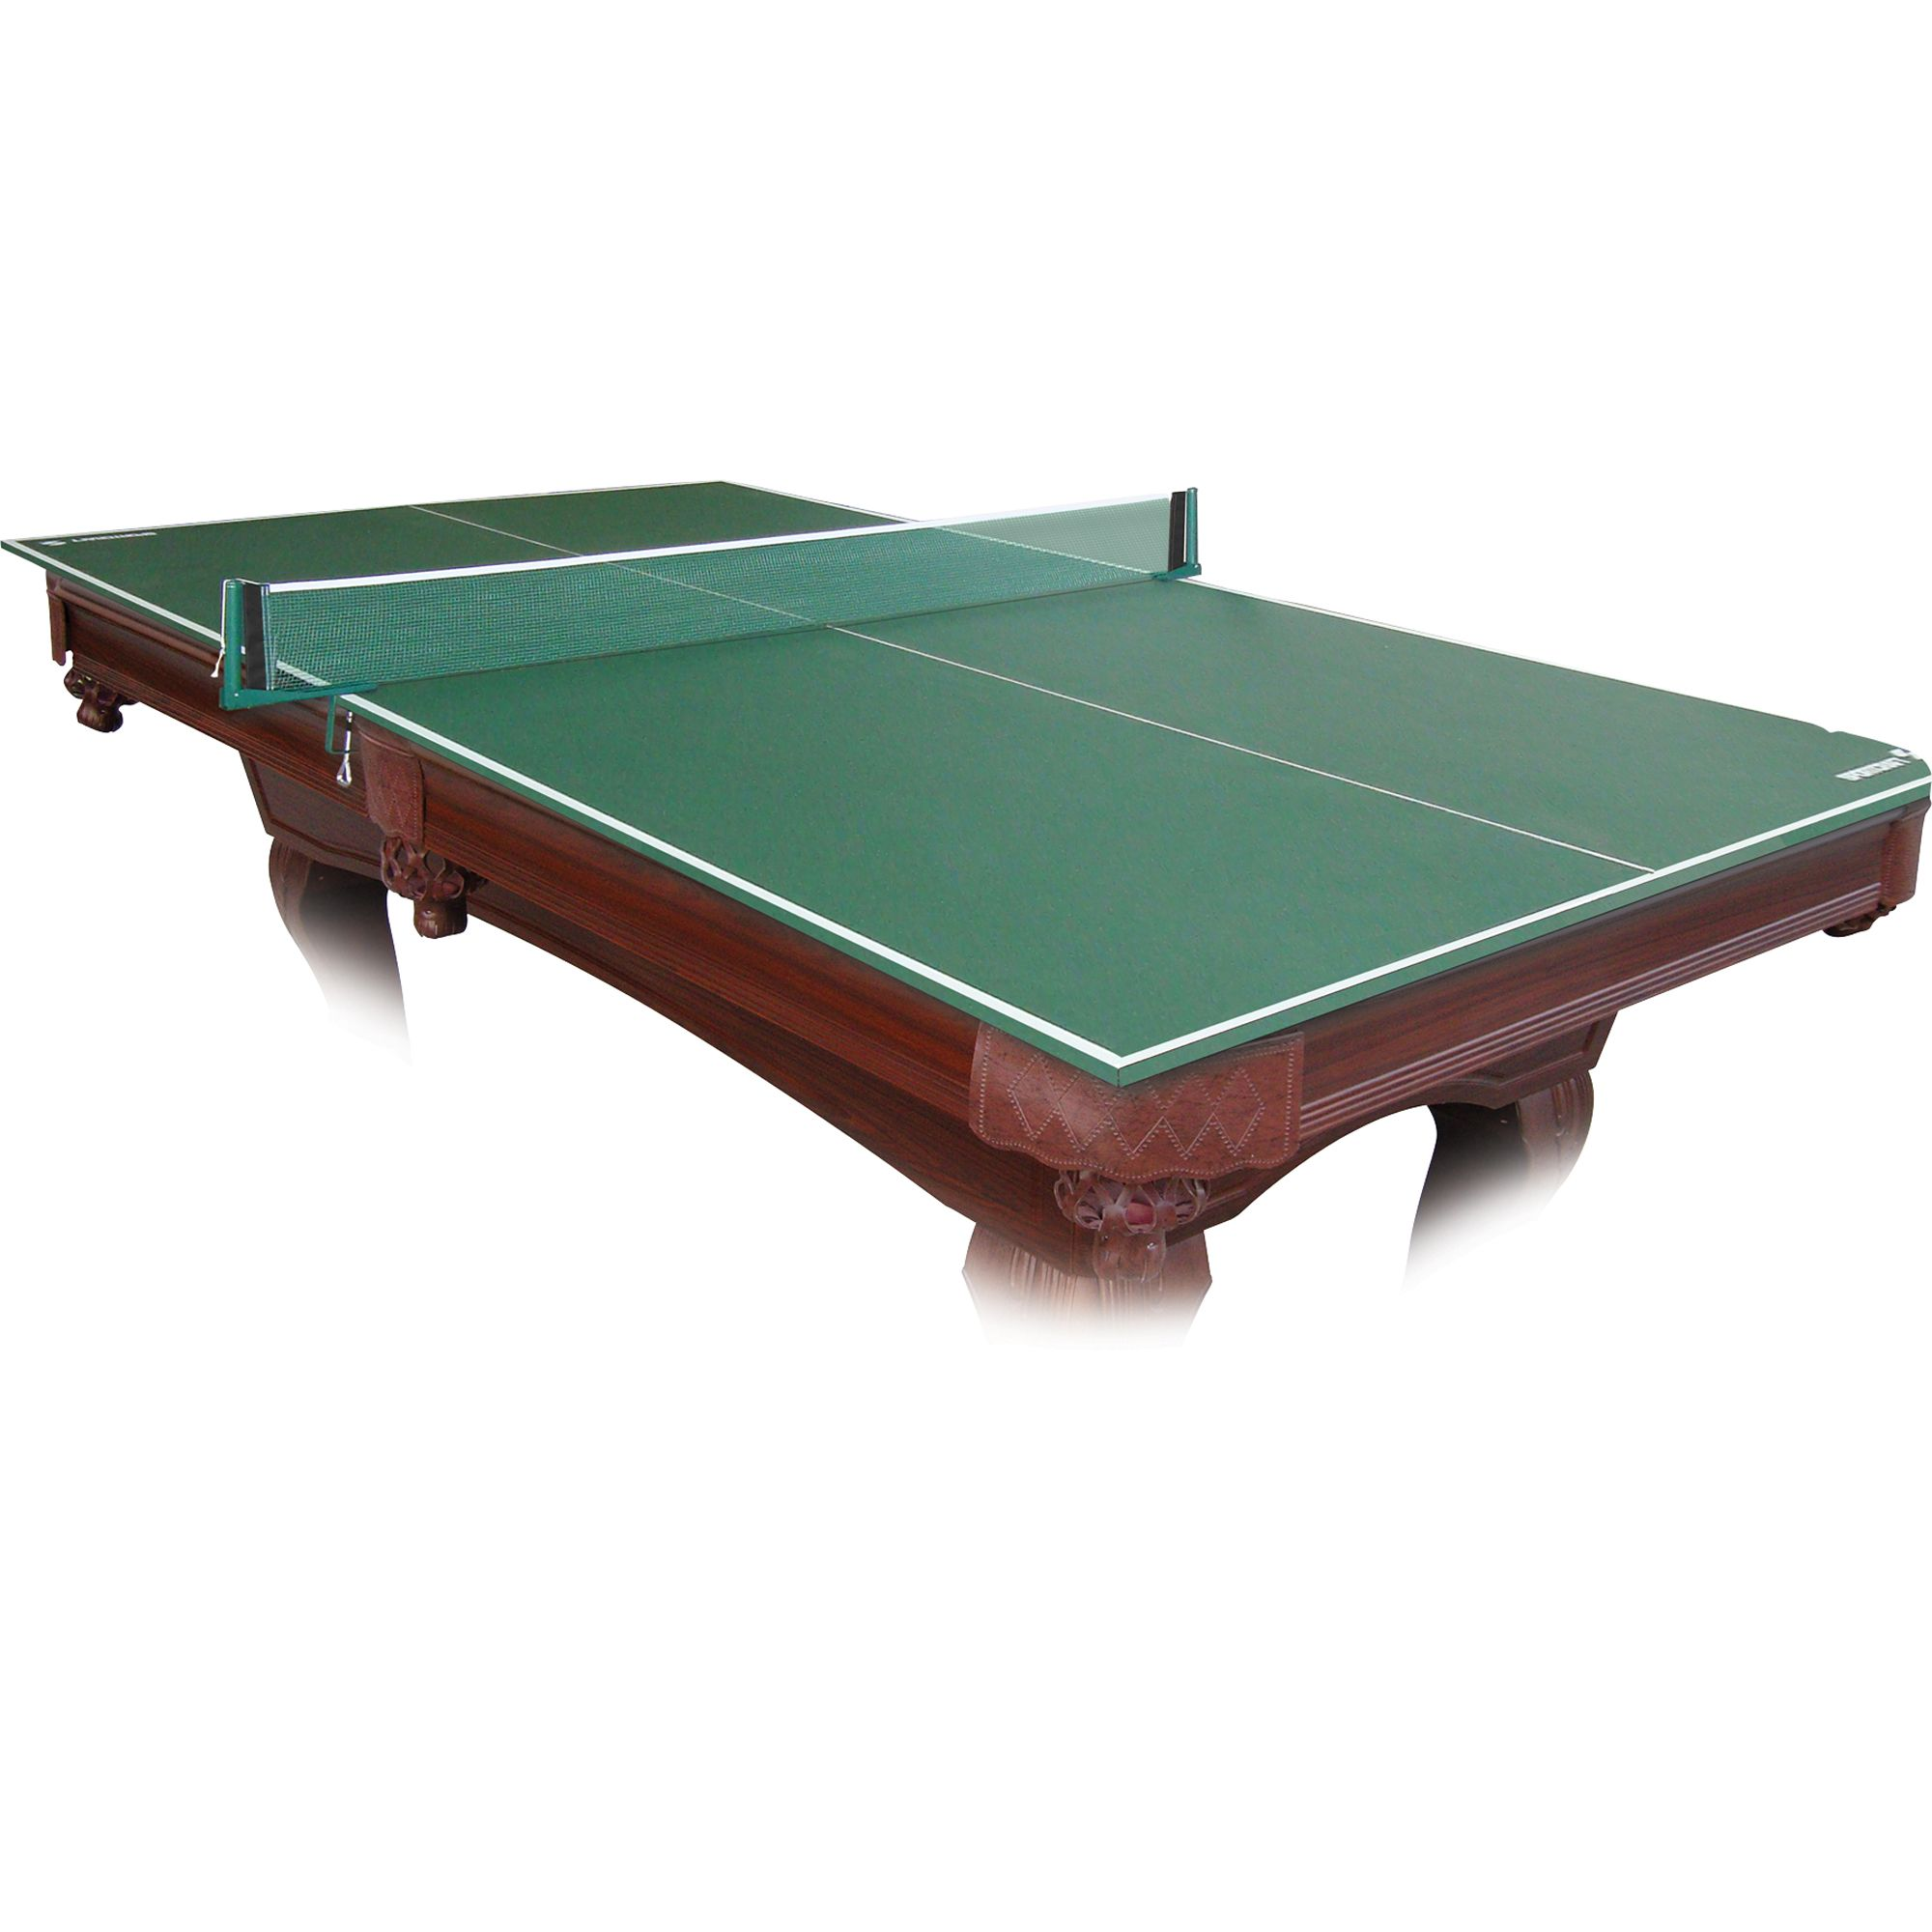 Sportcraft Folding Table Tennis Conversion Top